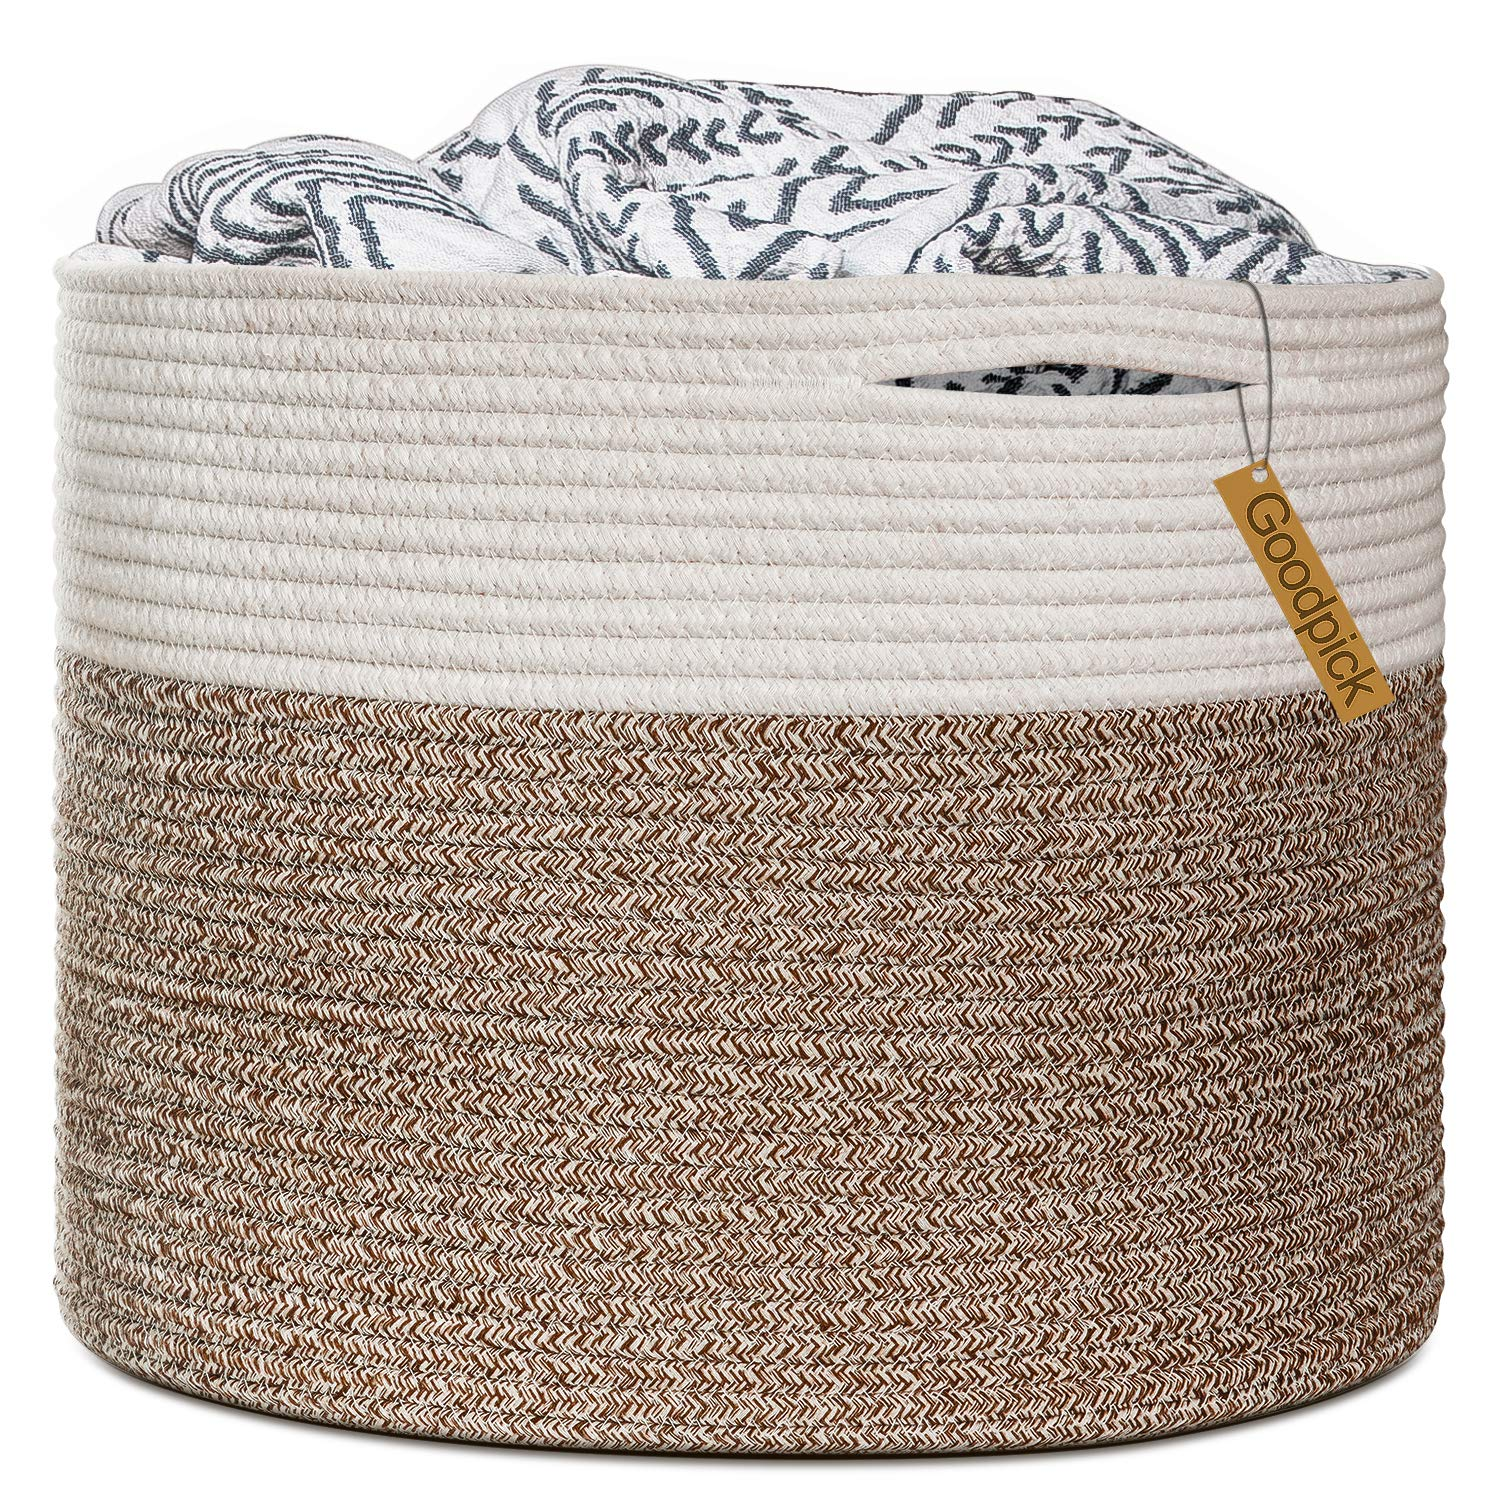 Goodpick Large Cotton Rope Basket 15.8 x15.8 x13.8 -Baby Laundry Basket Woven Blanket Basket Nursery Bin